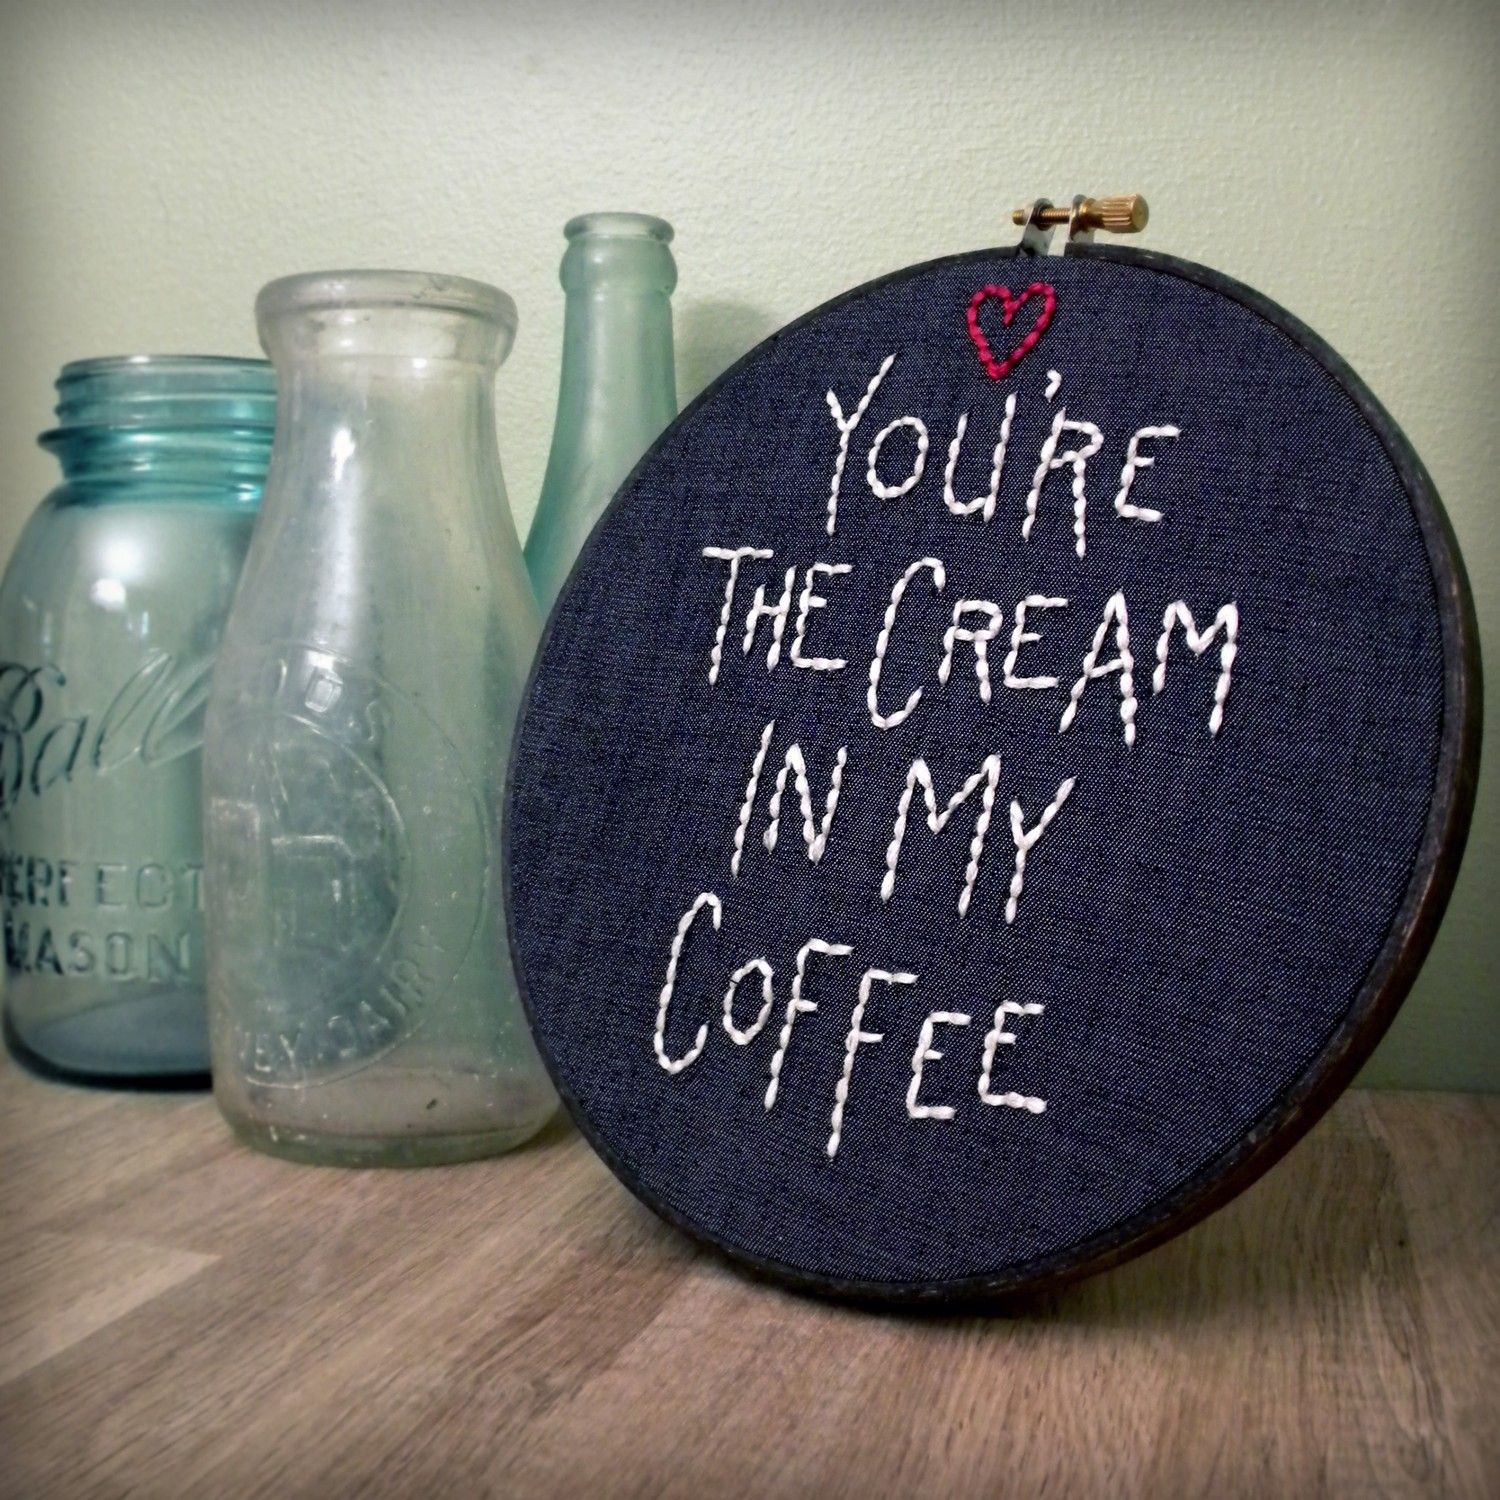 sometimes you're the caffeine. this would be super cute if I drank coffee. ha